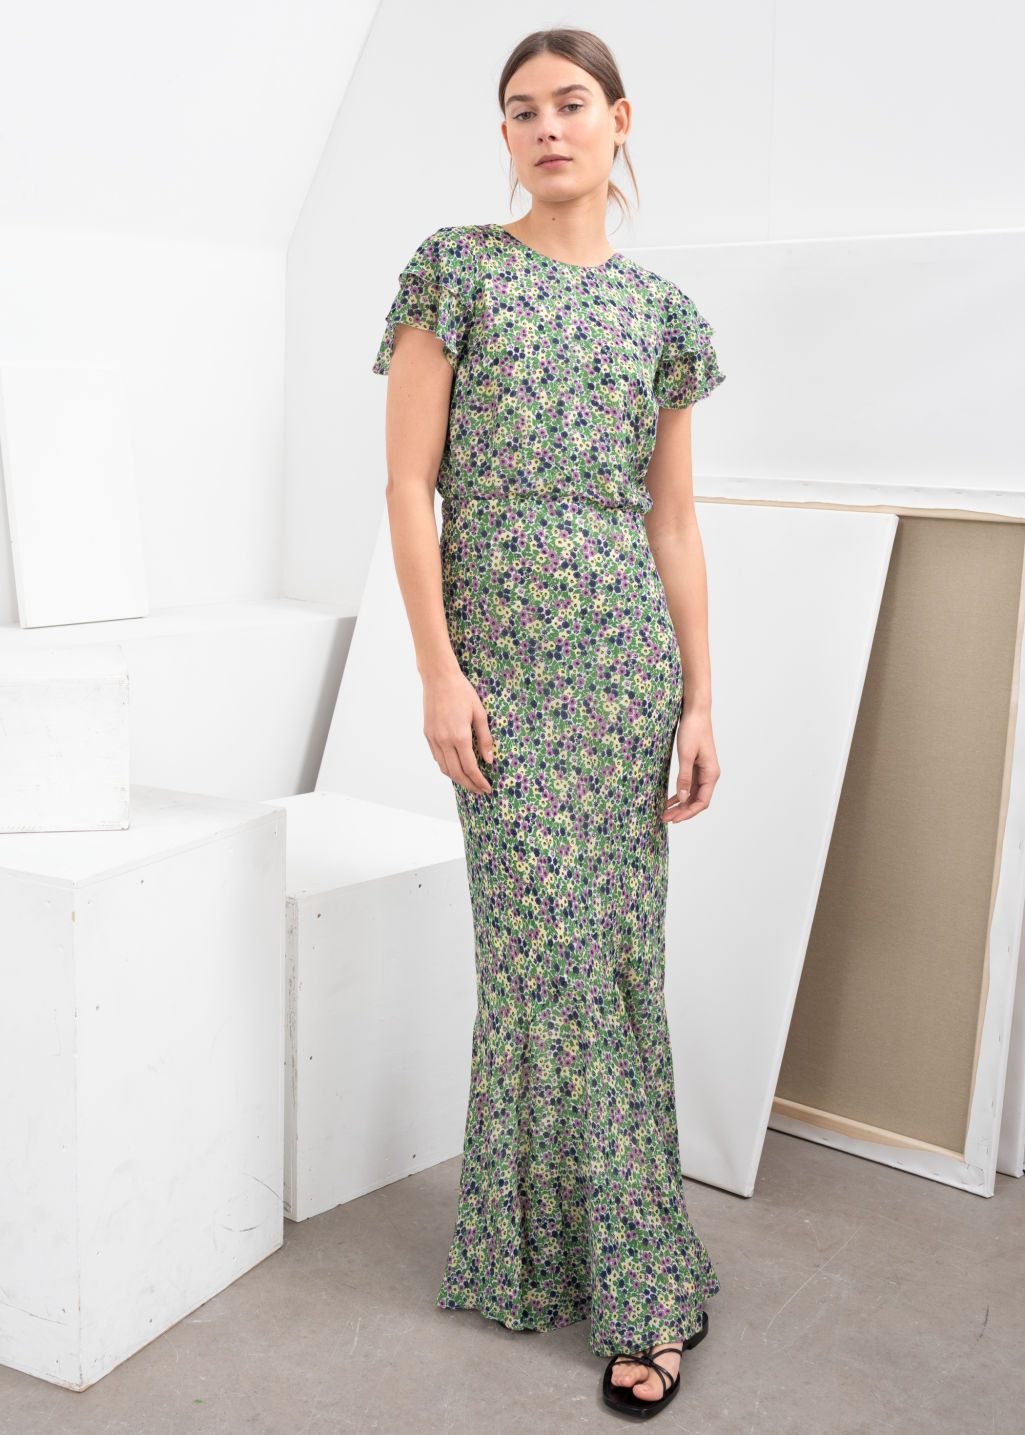 5a94133f614cd Ruffled Floral Maxi Dress in 2019 | High Street Research | Floral ...